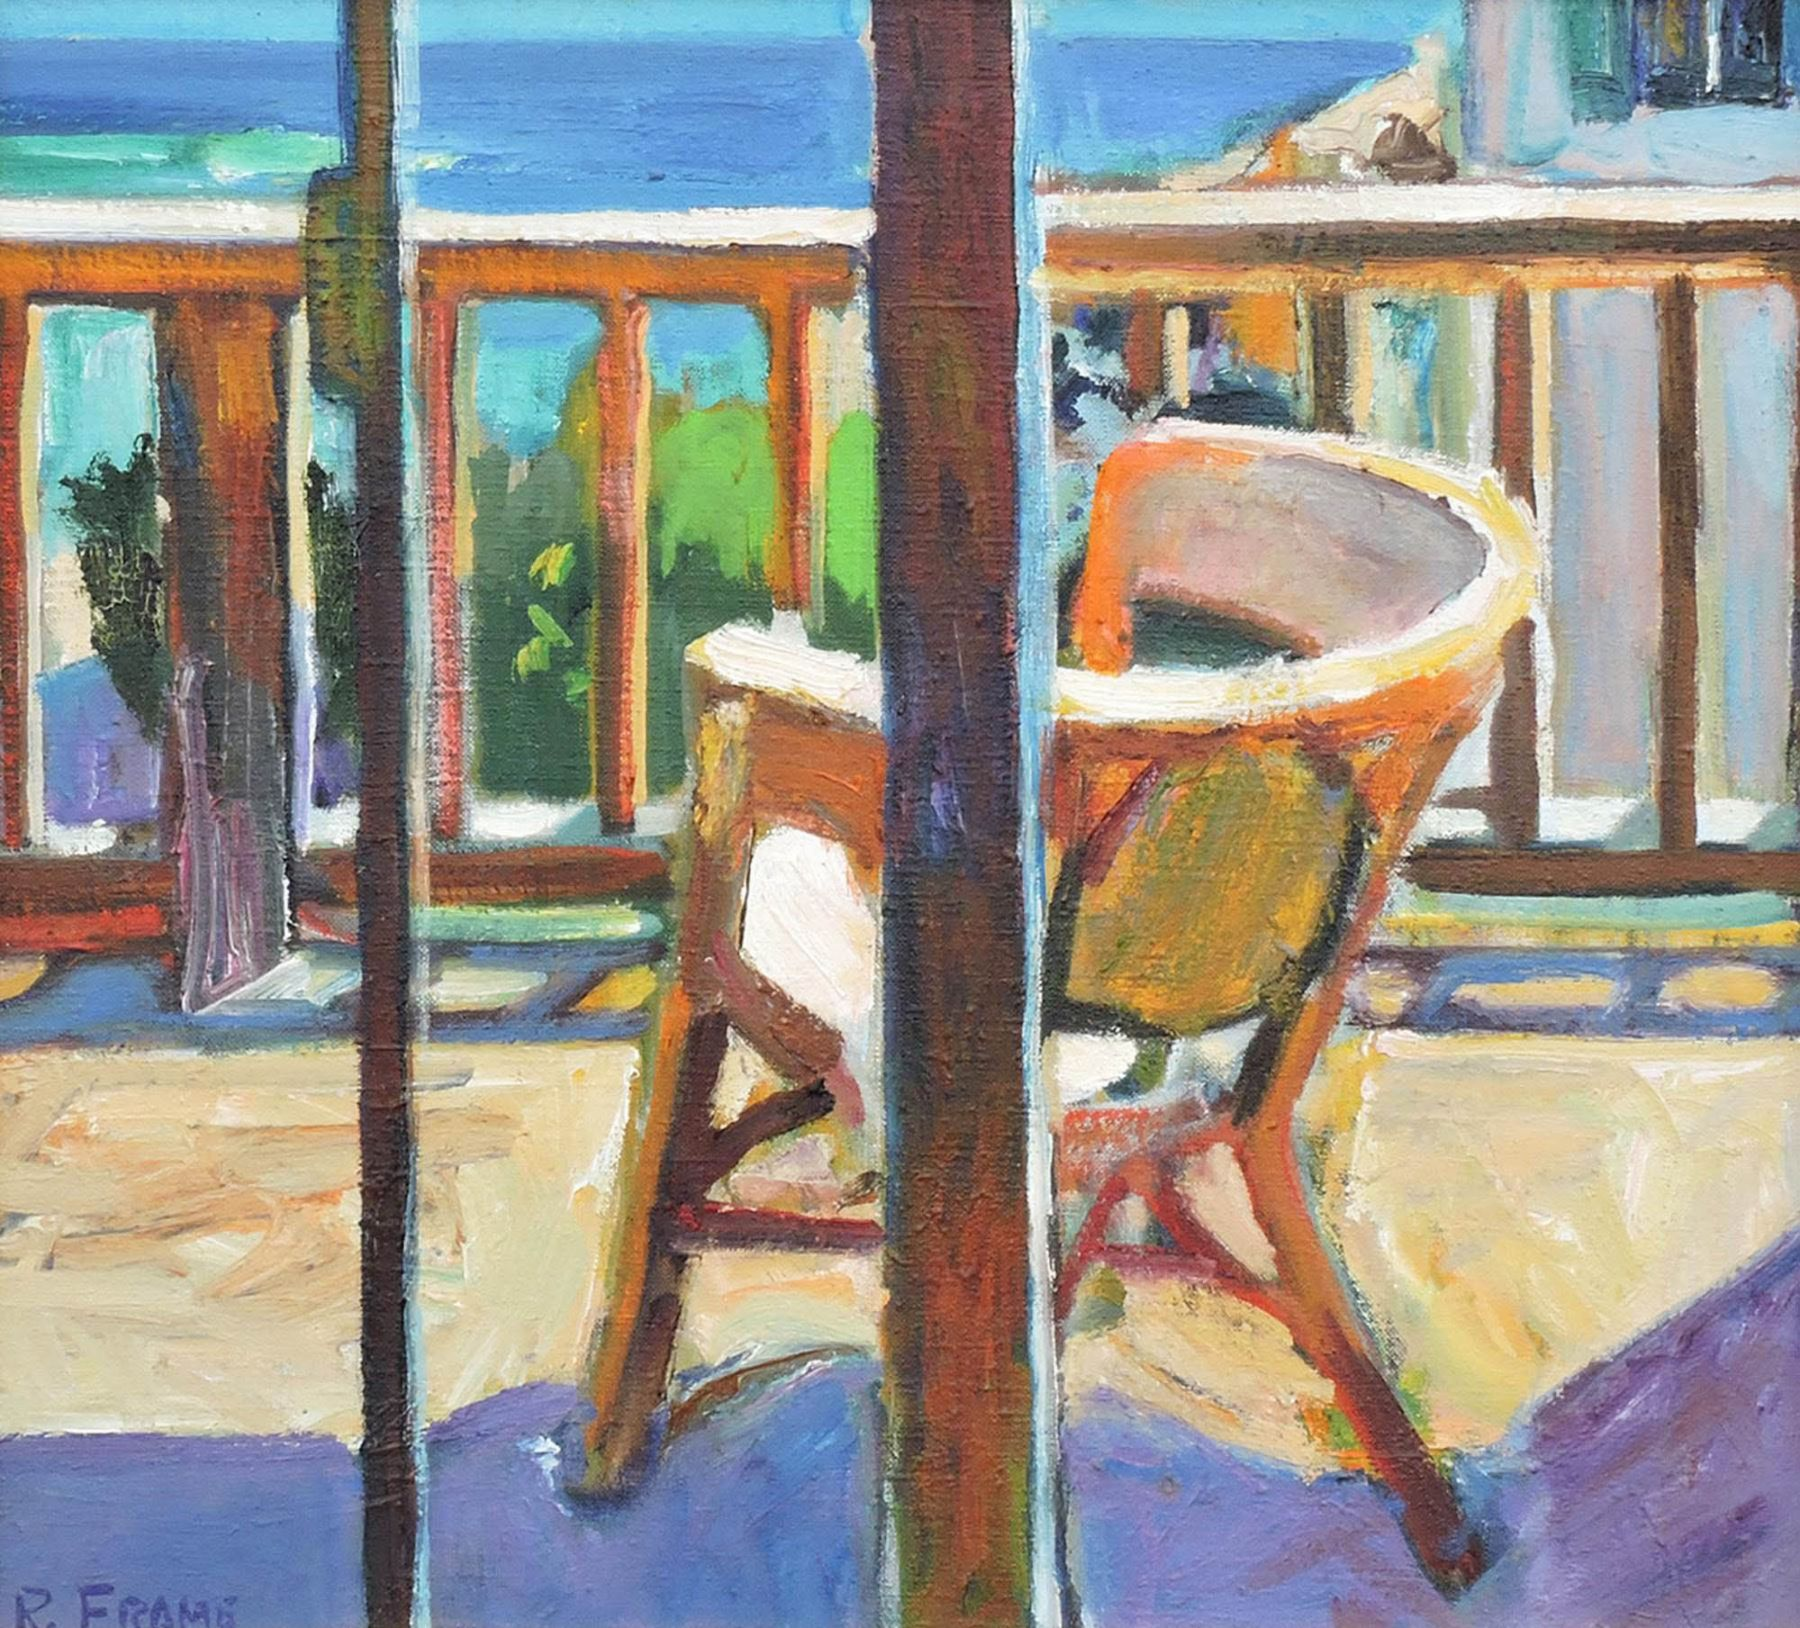 Robert Frame, Chair on the Balcony